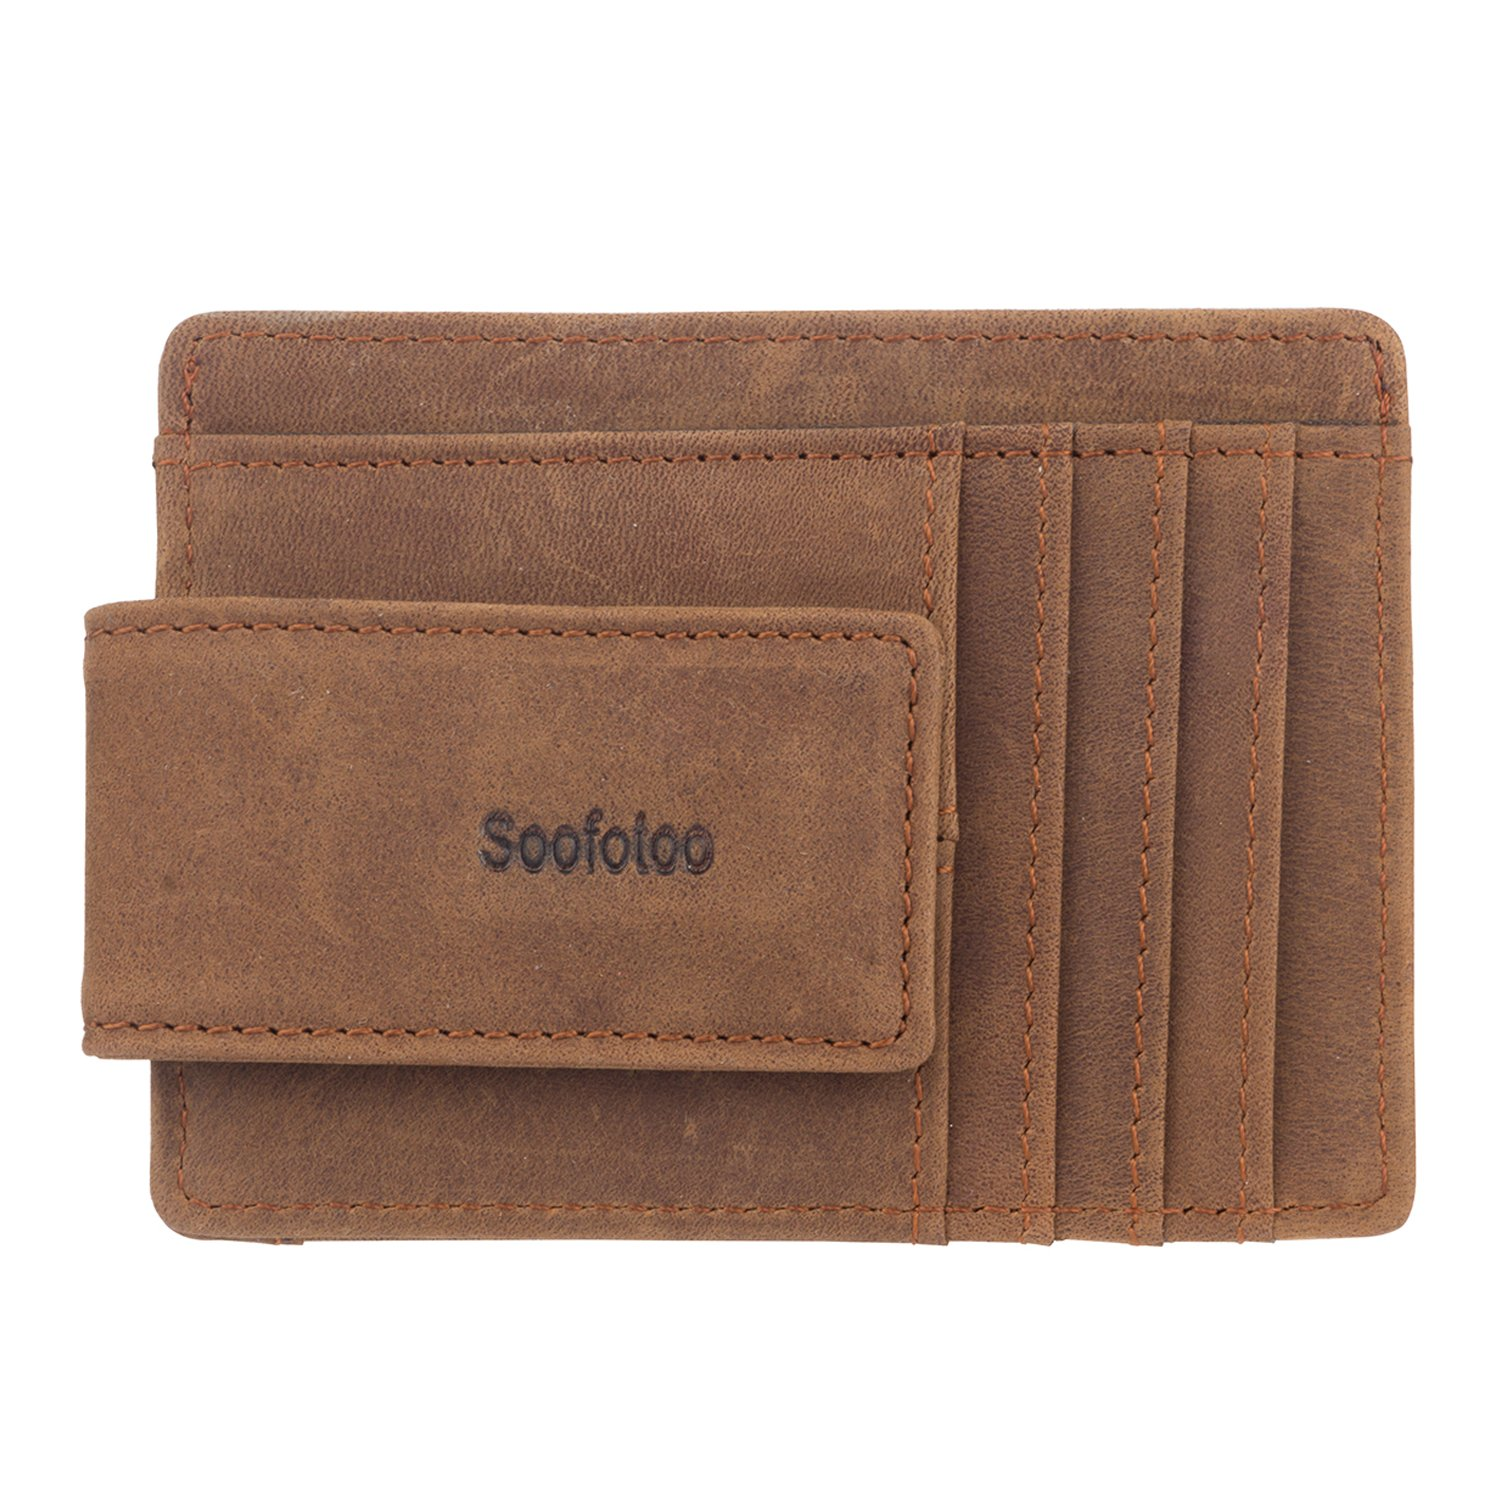 2420389e28fb Soofotoo Genuine Leather Money Clip Powerful Magnetic Money Clips  Minimalist Card Wallet ID Case ID Window with RFID blocking Stop Electronic  ...